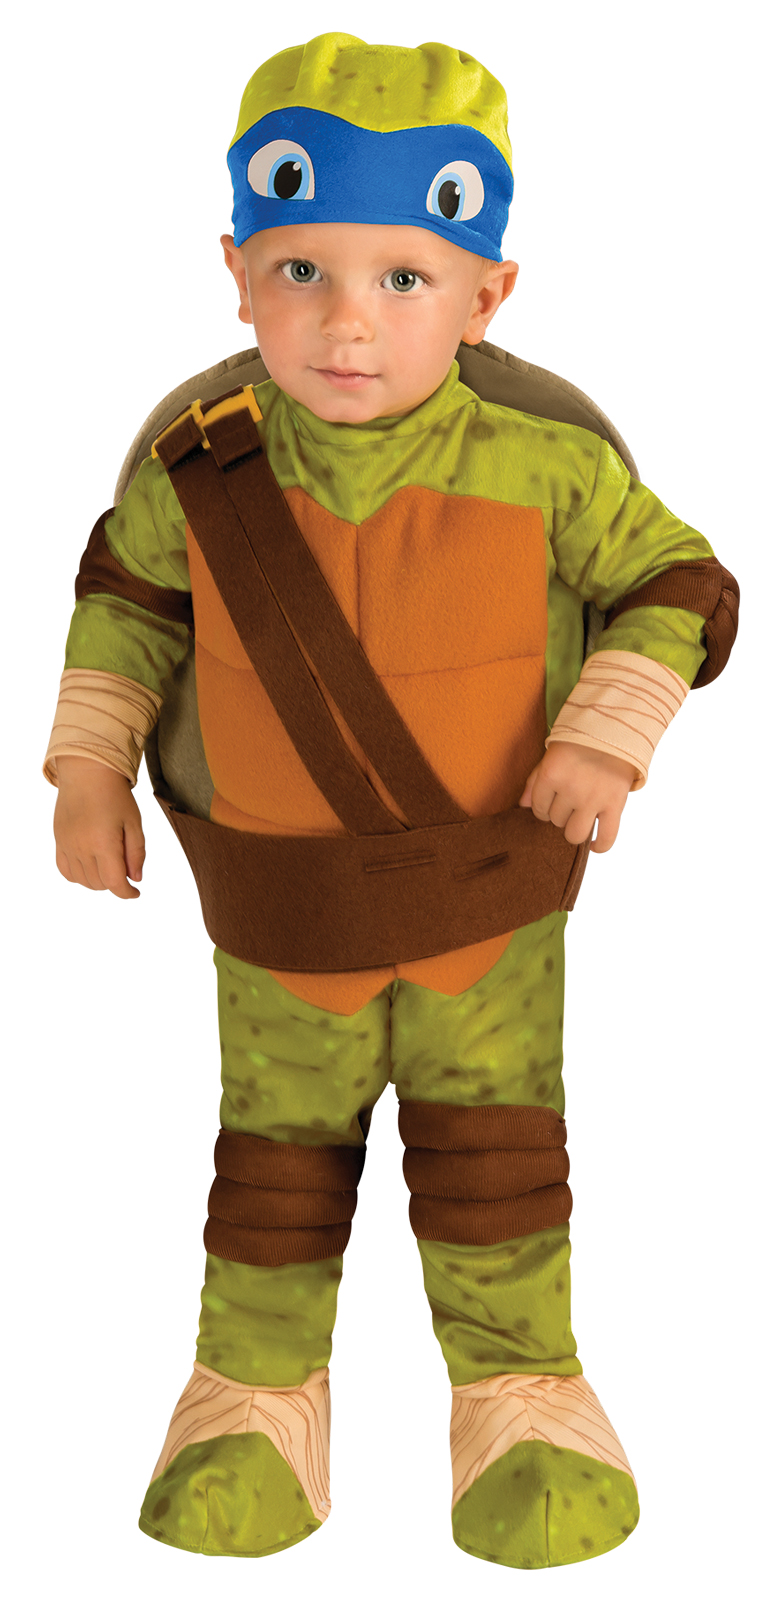 Teenage Mutant Ninja Turtle – Leonardo Toddler Costume